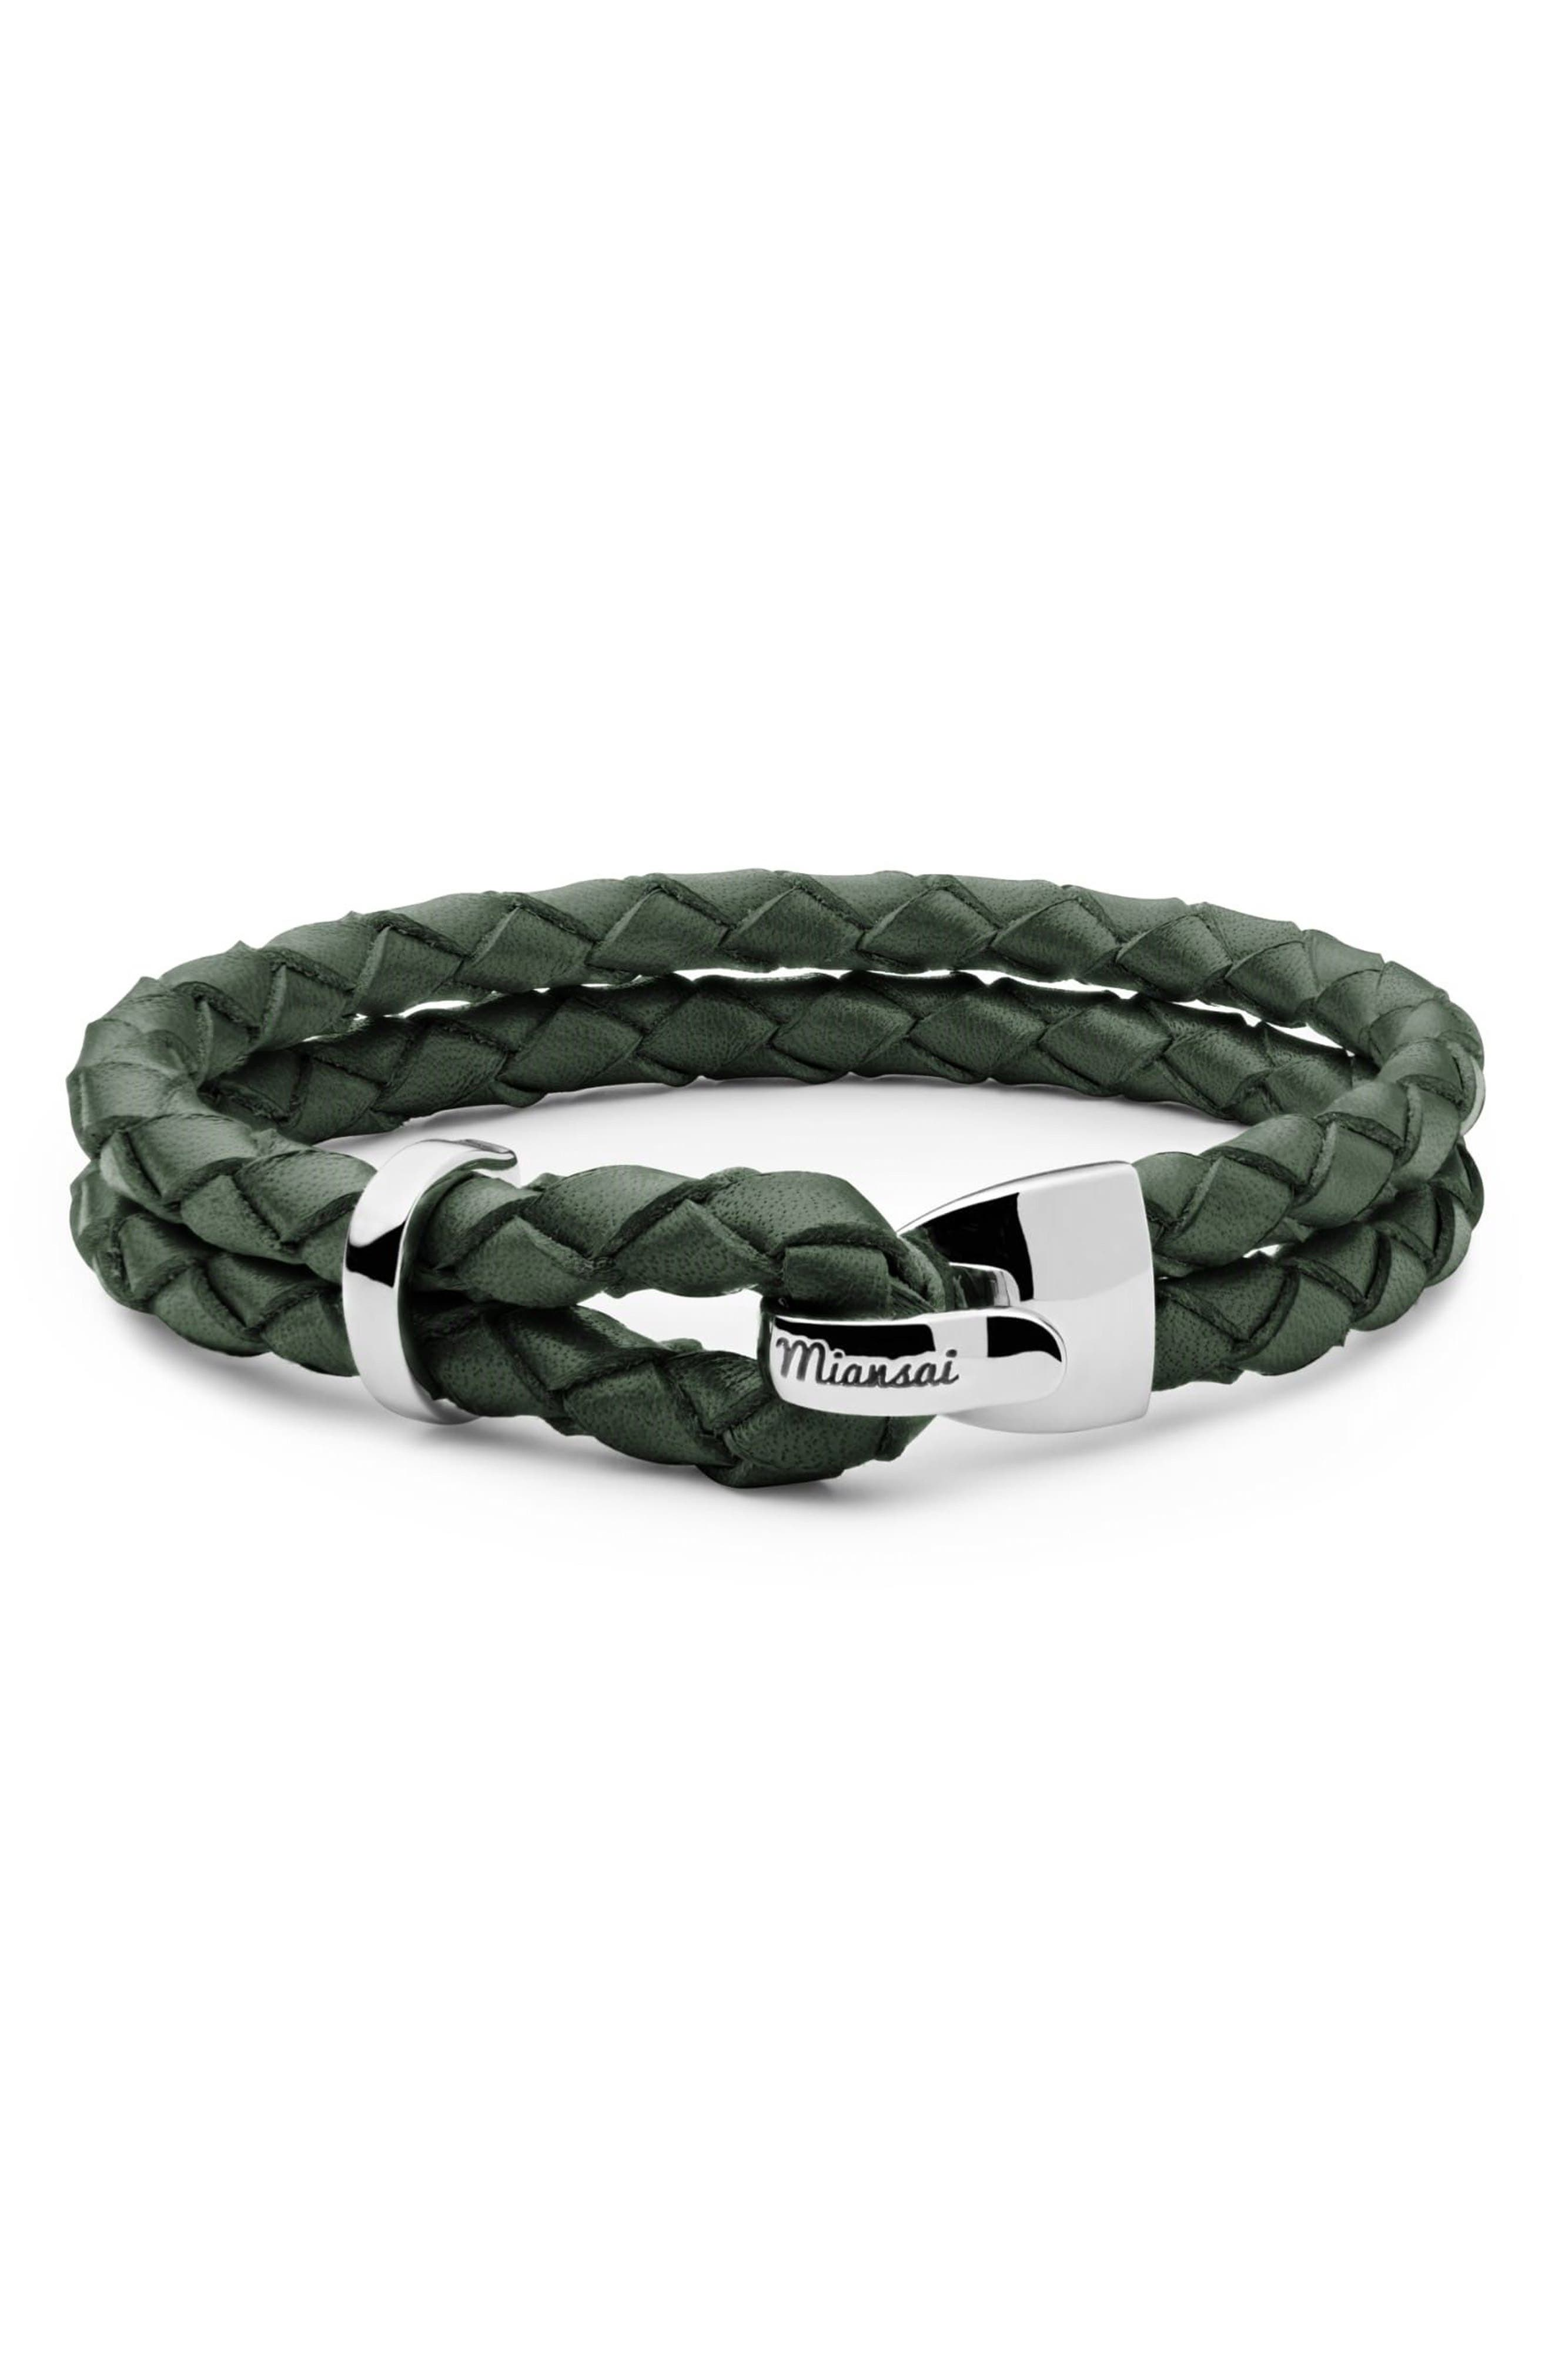 Alternate Image 1 Selected - Miansai Beacon Braided Leather Bracelet